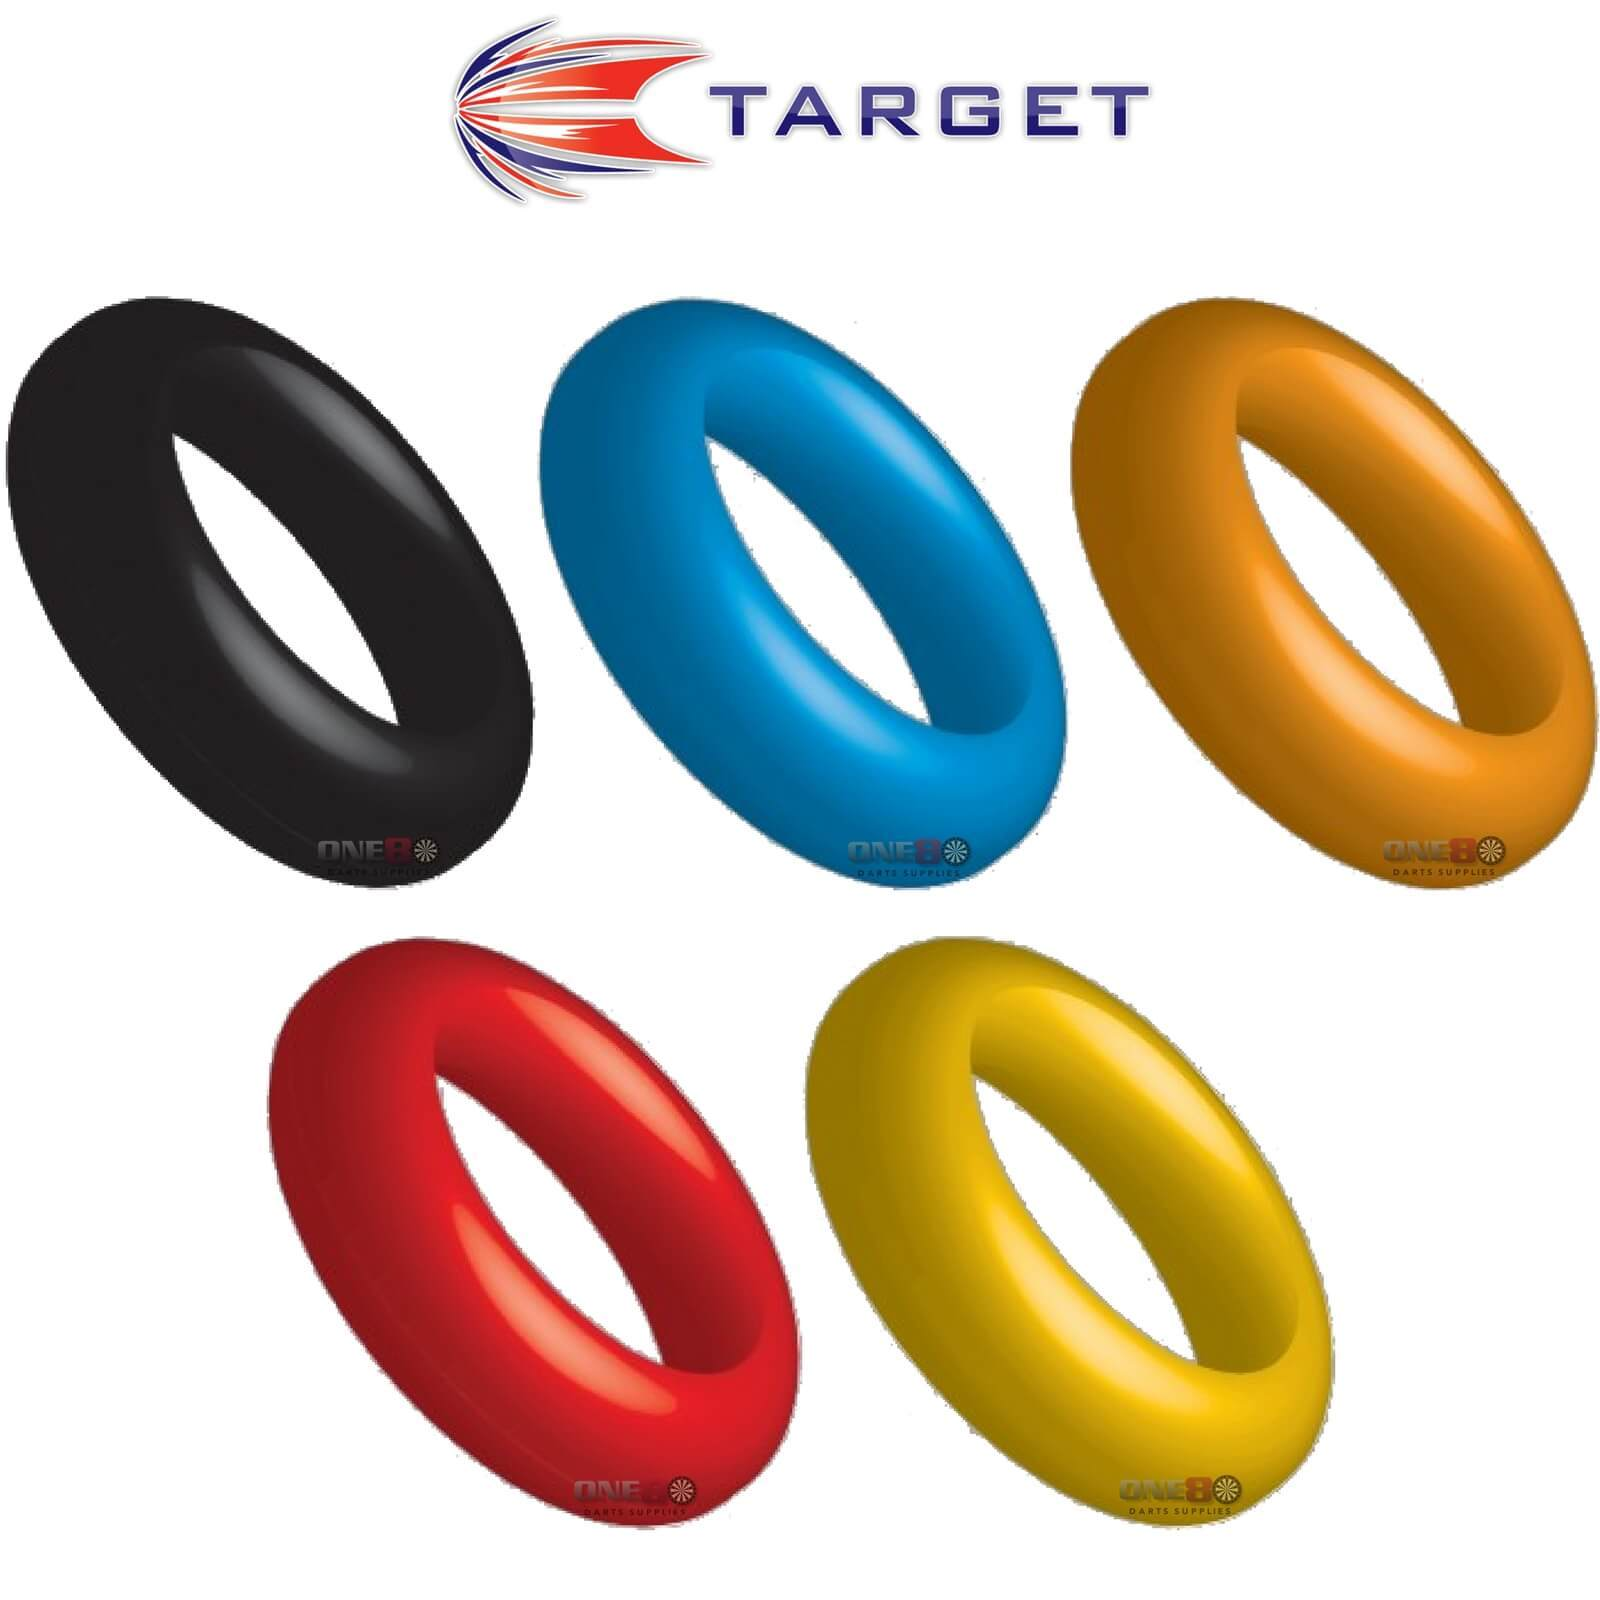 Soft Tip Accessories - Target - Ringos Spare O Rings - 12 Pack